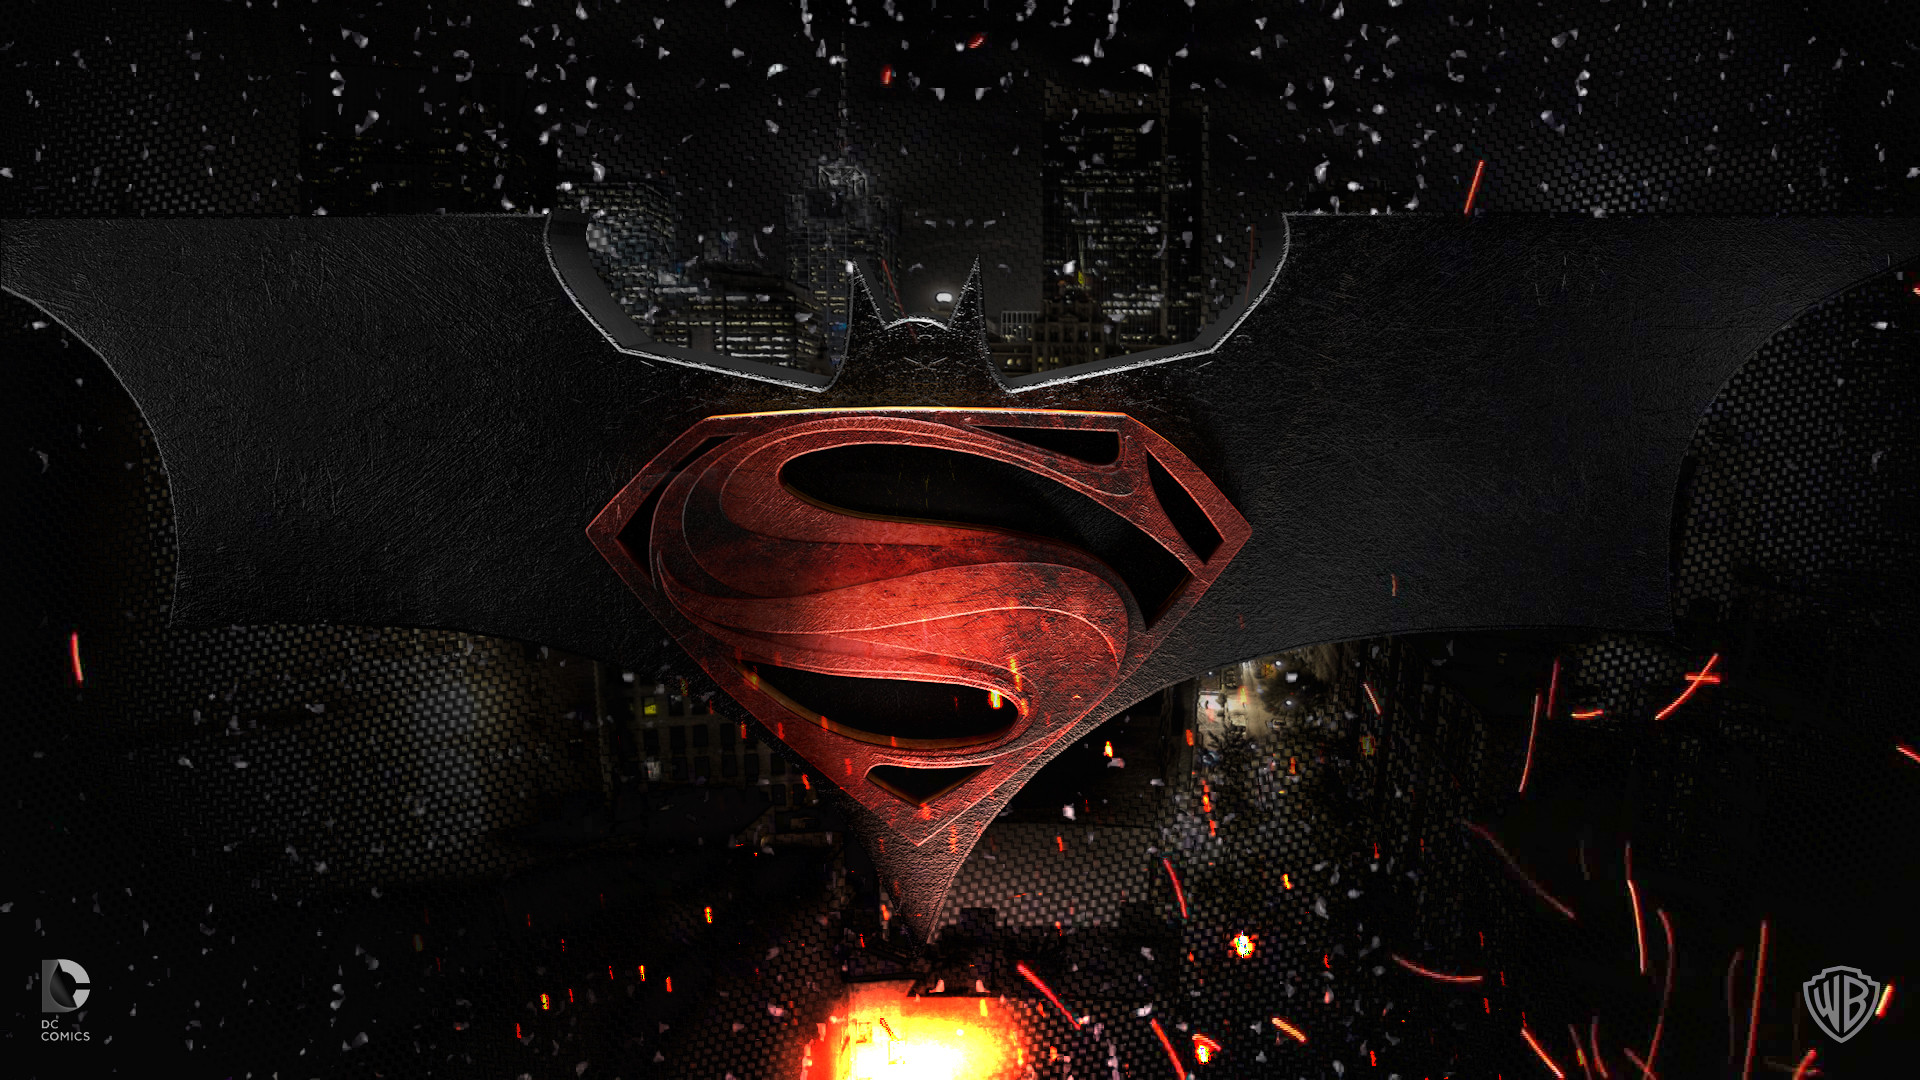 1920x1080 Batman Vs Superman Logo Movies Wallpaper HD 18 #2289 Wallpaper | High .